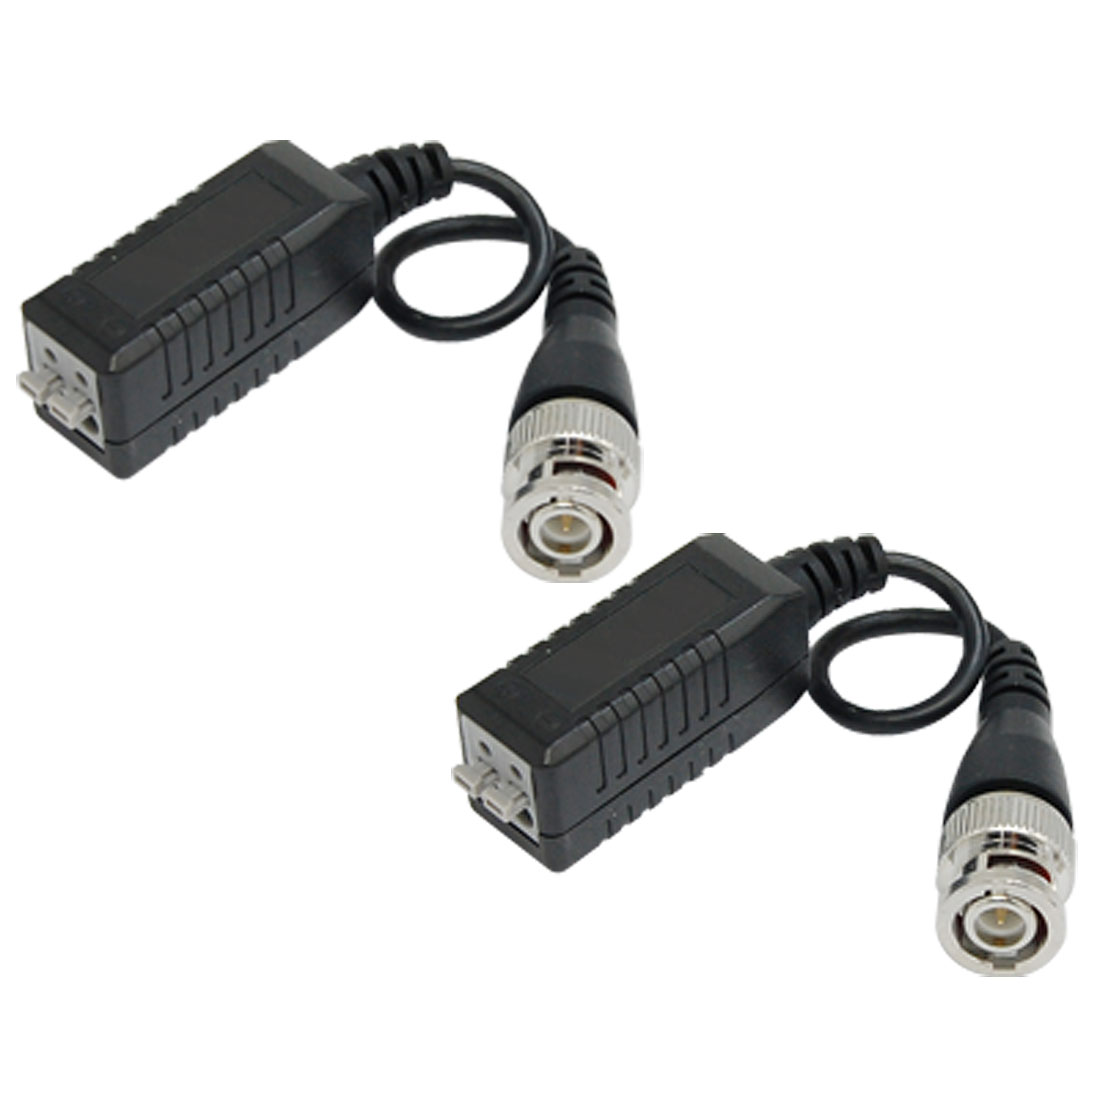 2 x CCTV Camera Male BNC Plug Single Channel Passive Video Balun